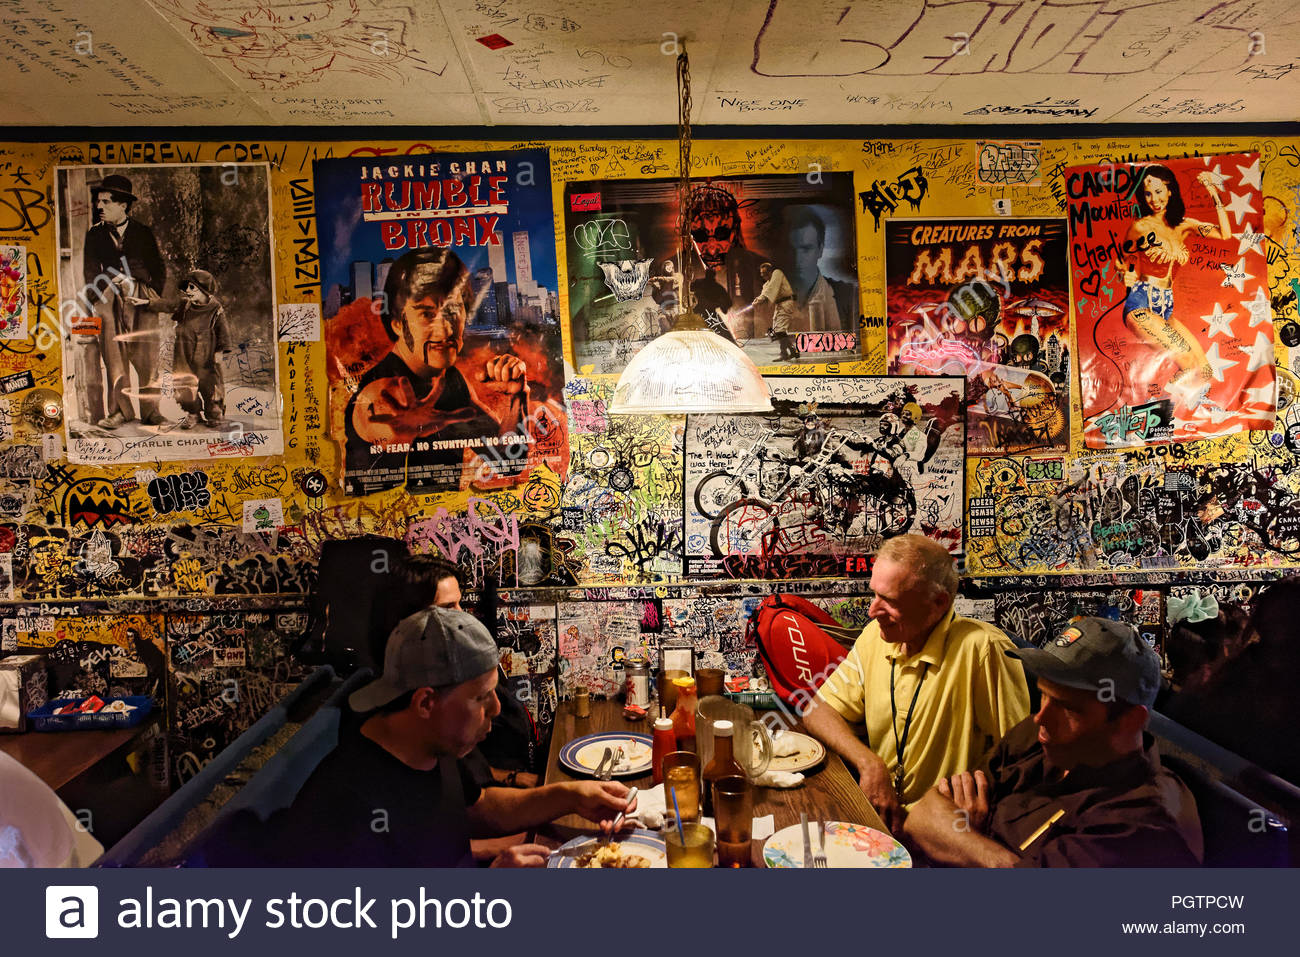 Greasy Spoon Stock Photos & Greasy Spoon Stock Images - Alamy